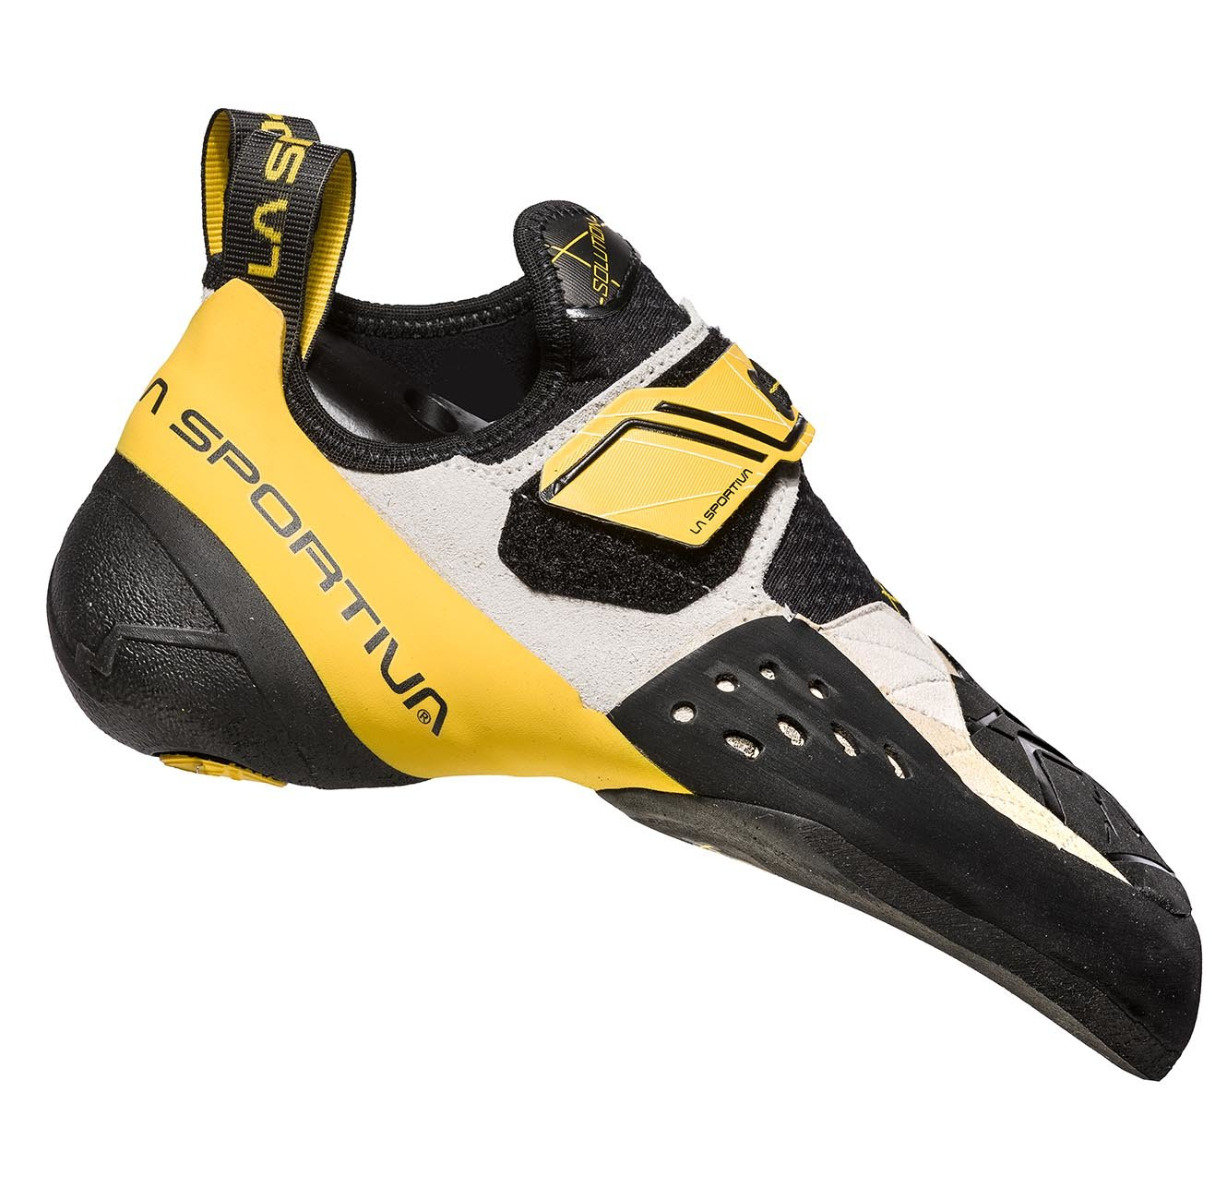 LA SPORTIVA La Sportiva Solution white / yellow 45